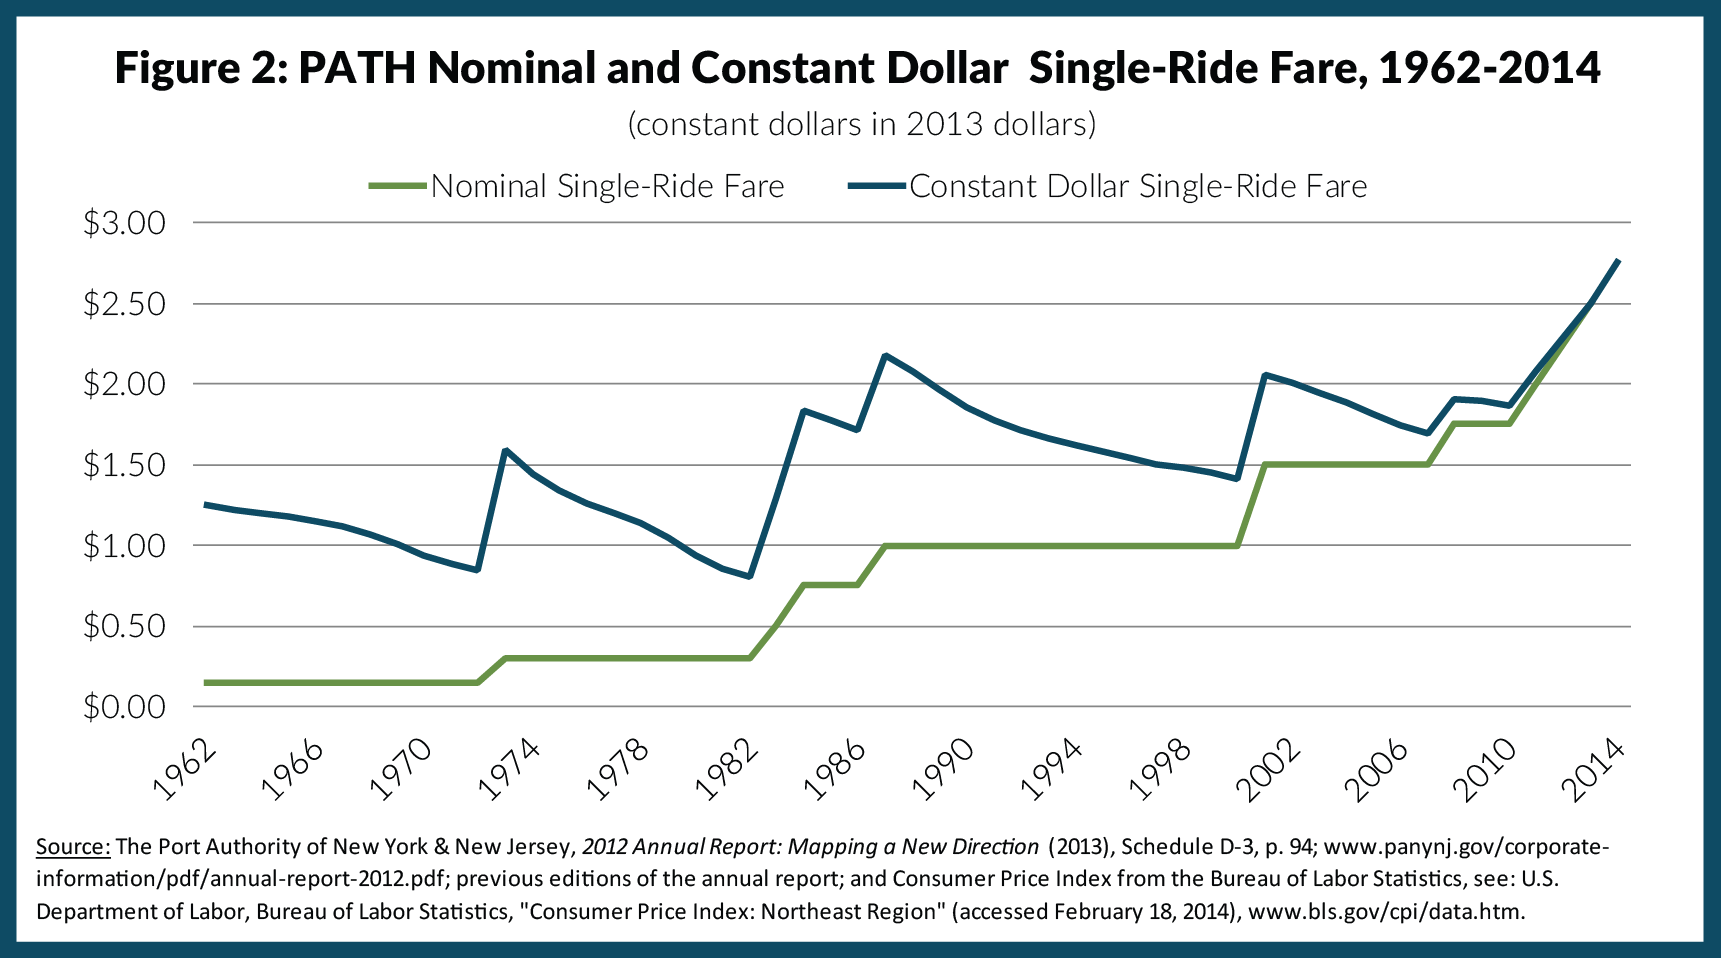 Figure 2: PATH Nominal and Constant Dollar Single-Ride Fare, 1962-2014